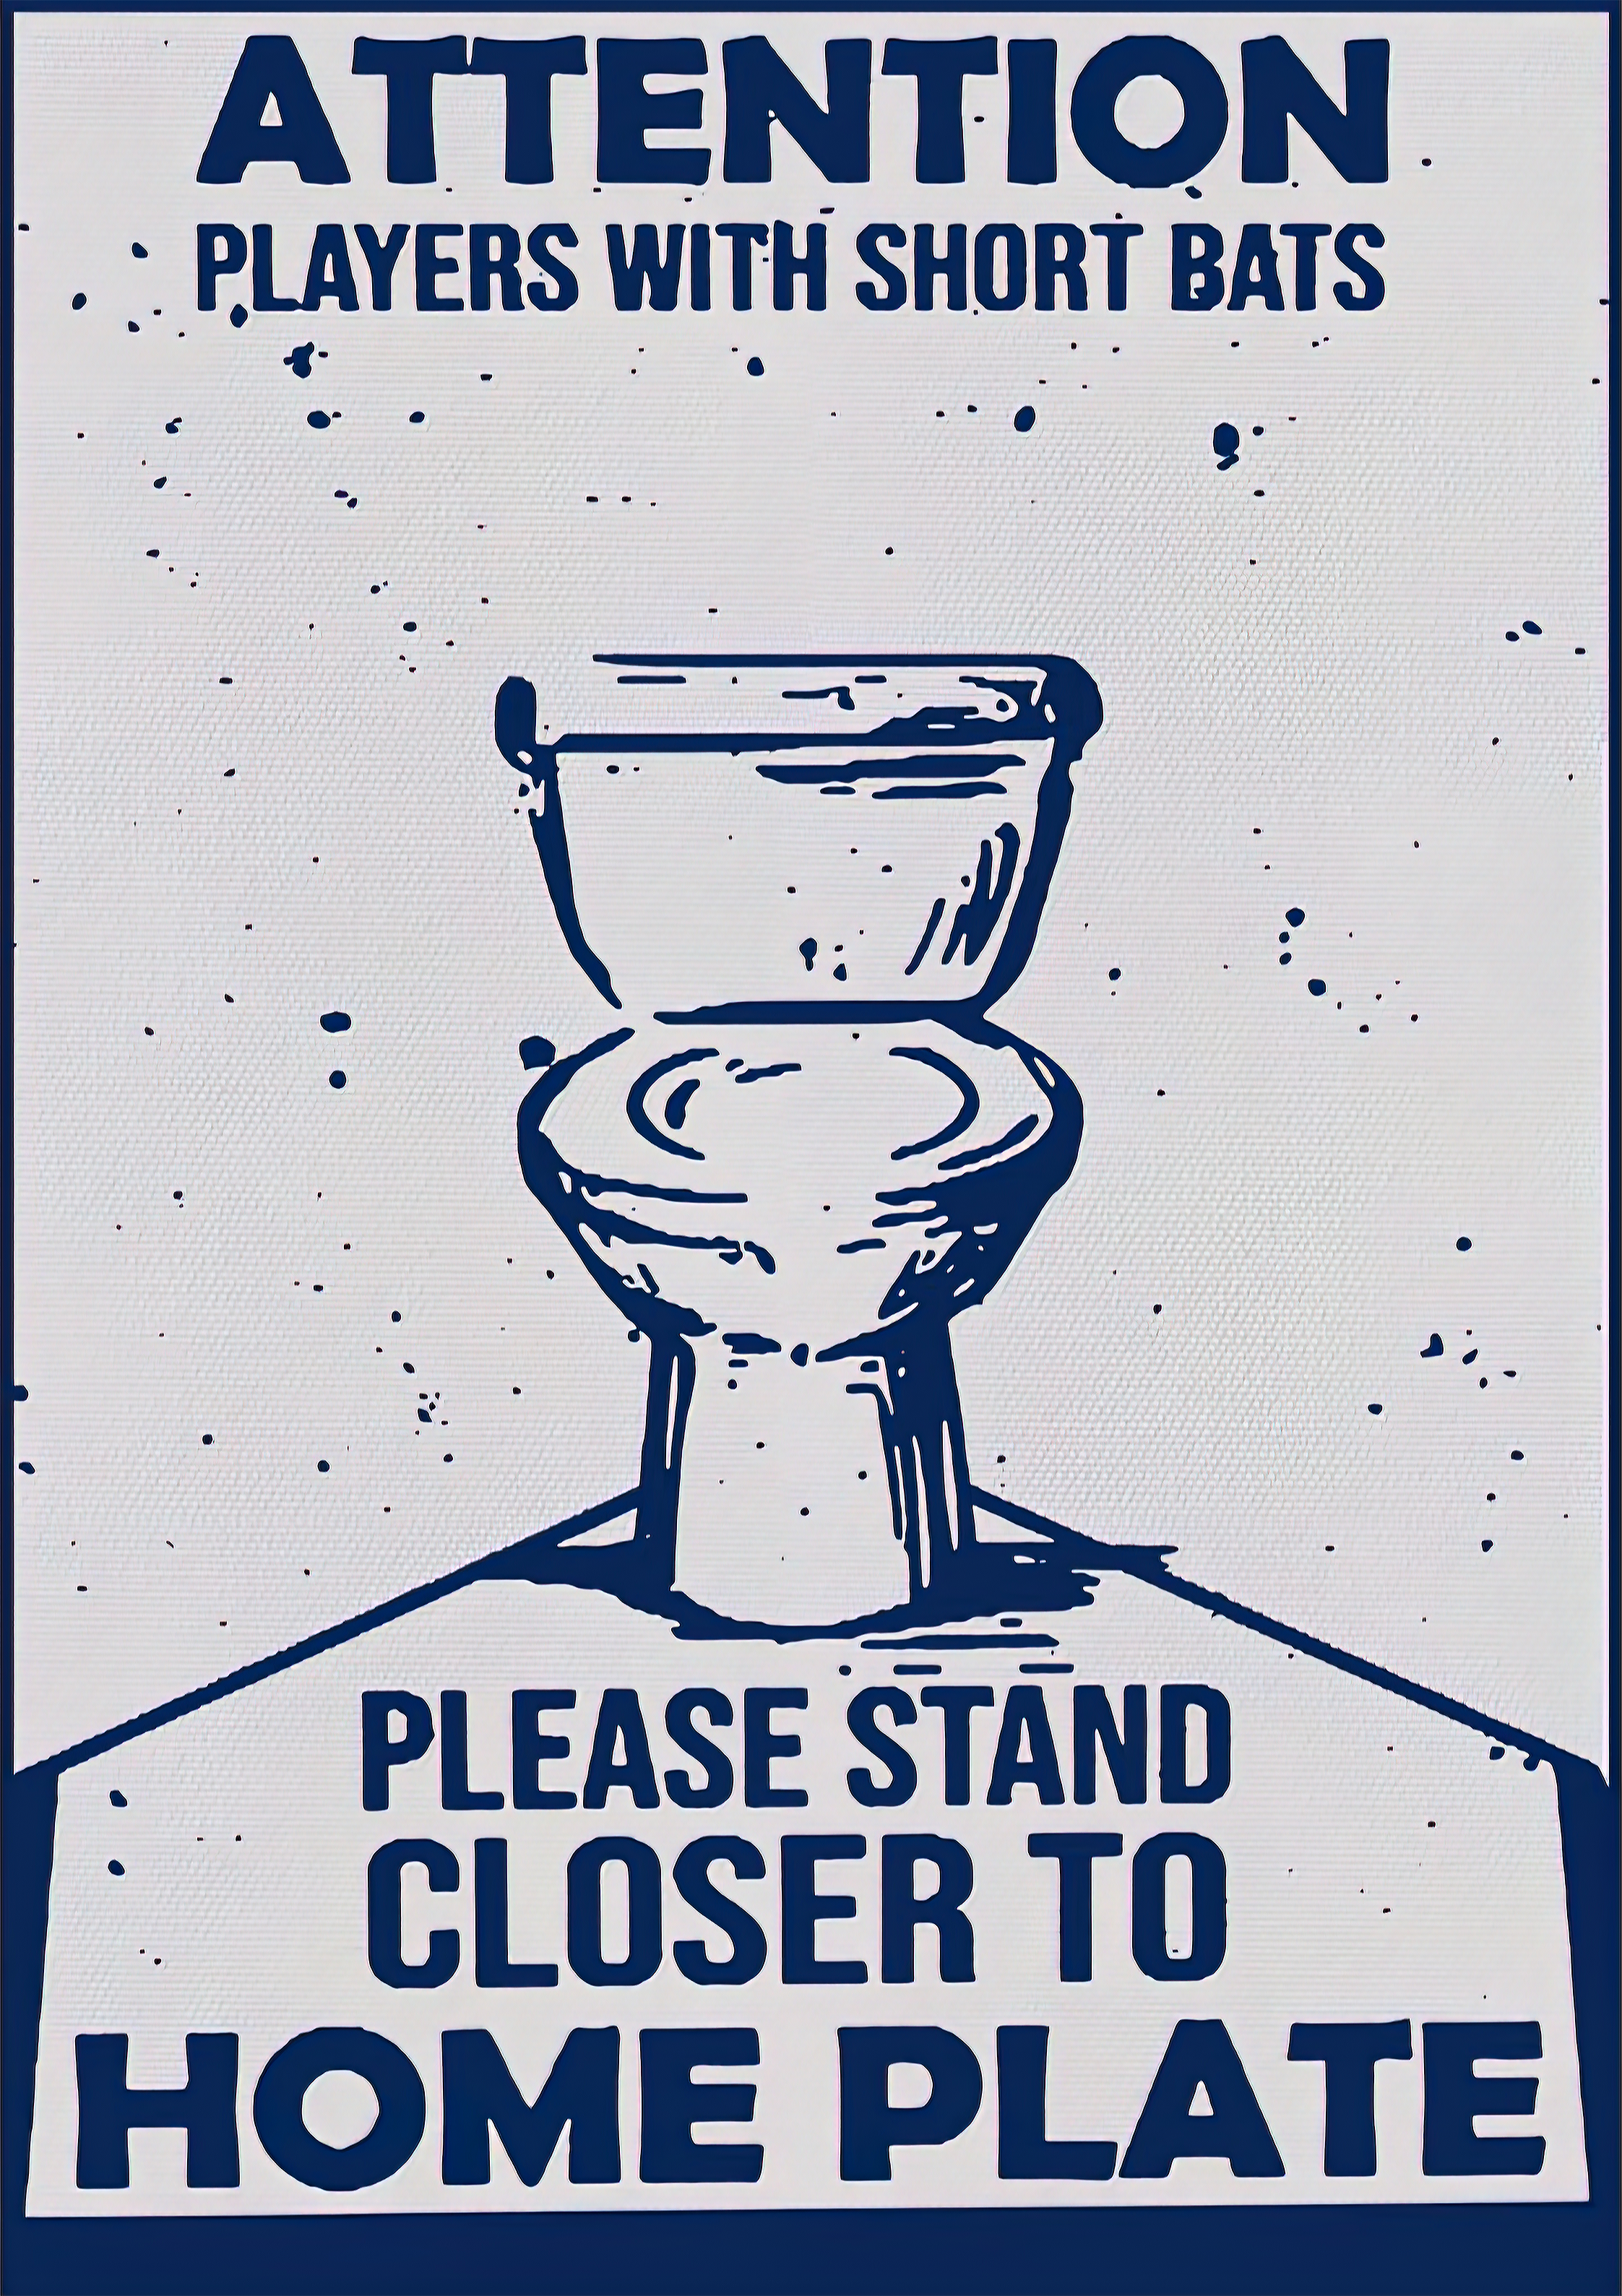 Attention Players With Short Bats Please Stand Closer To Home Plate poster